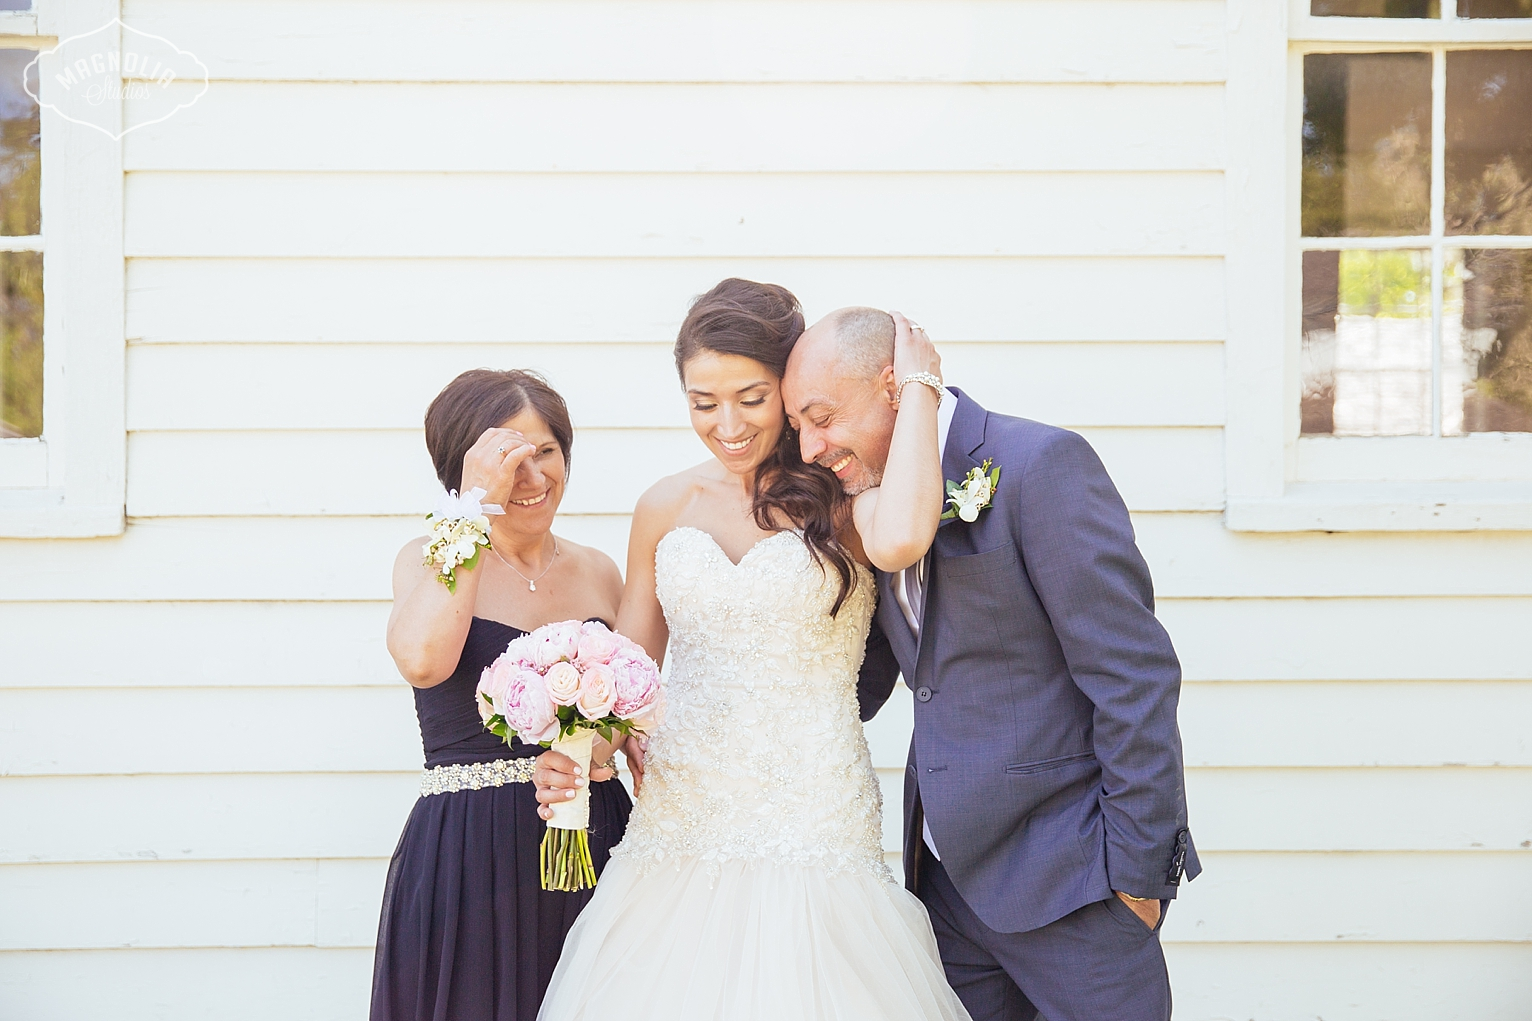 Bride and her dad on her wedding day